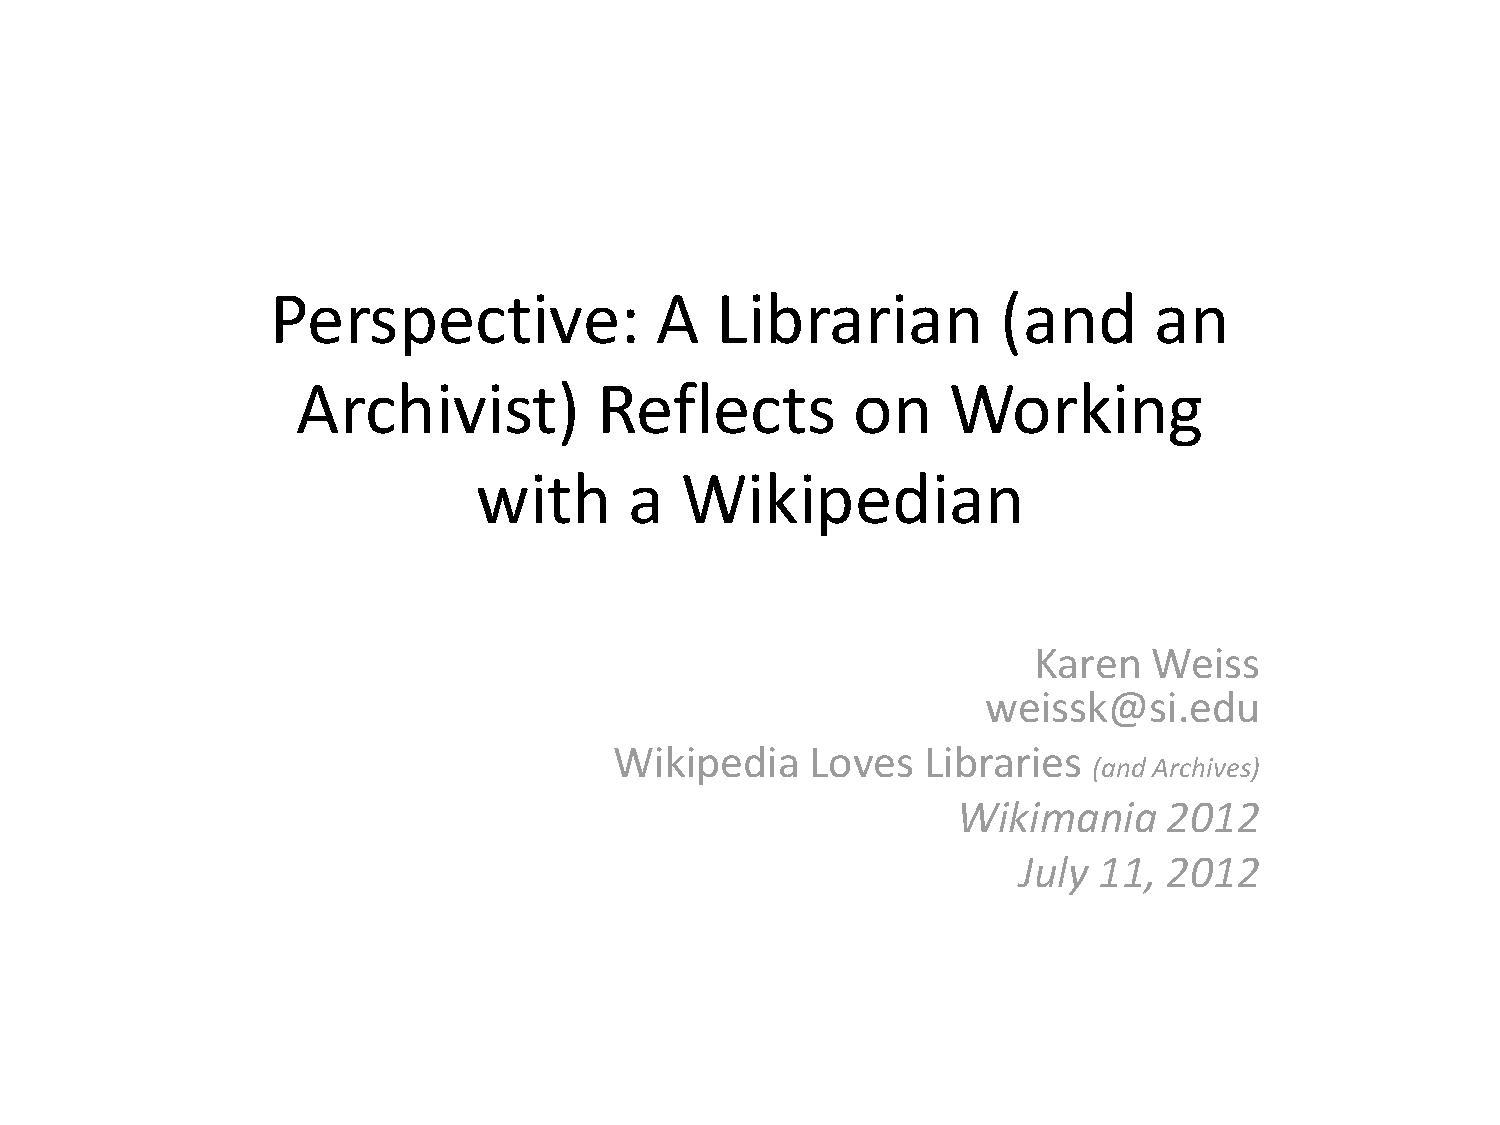 Perspective: A Librarian Reflects on Working with a Wikipedia